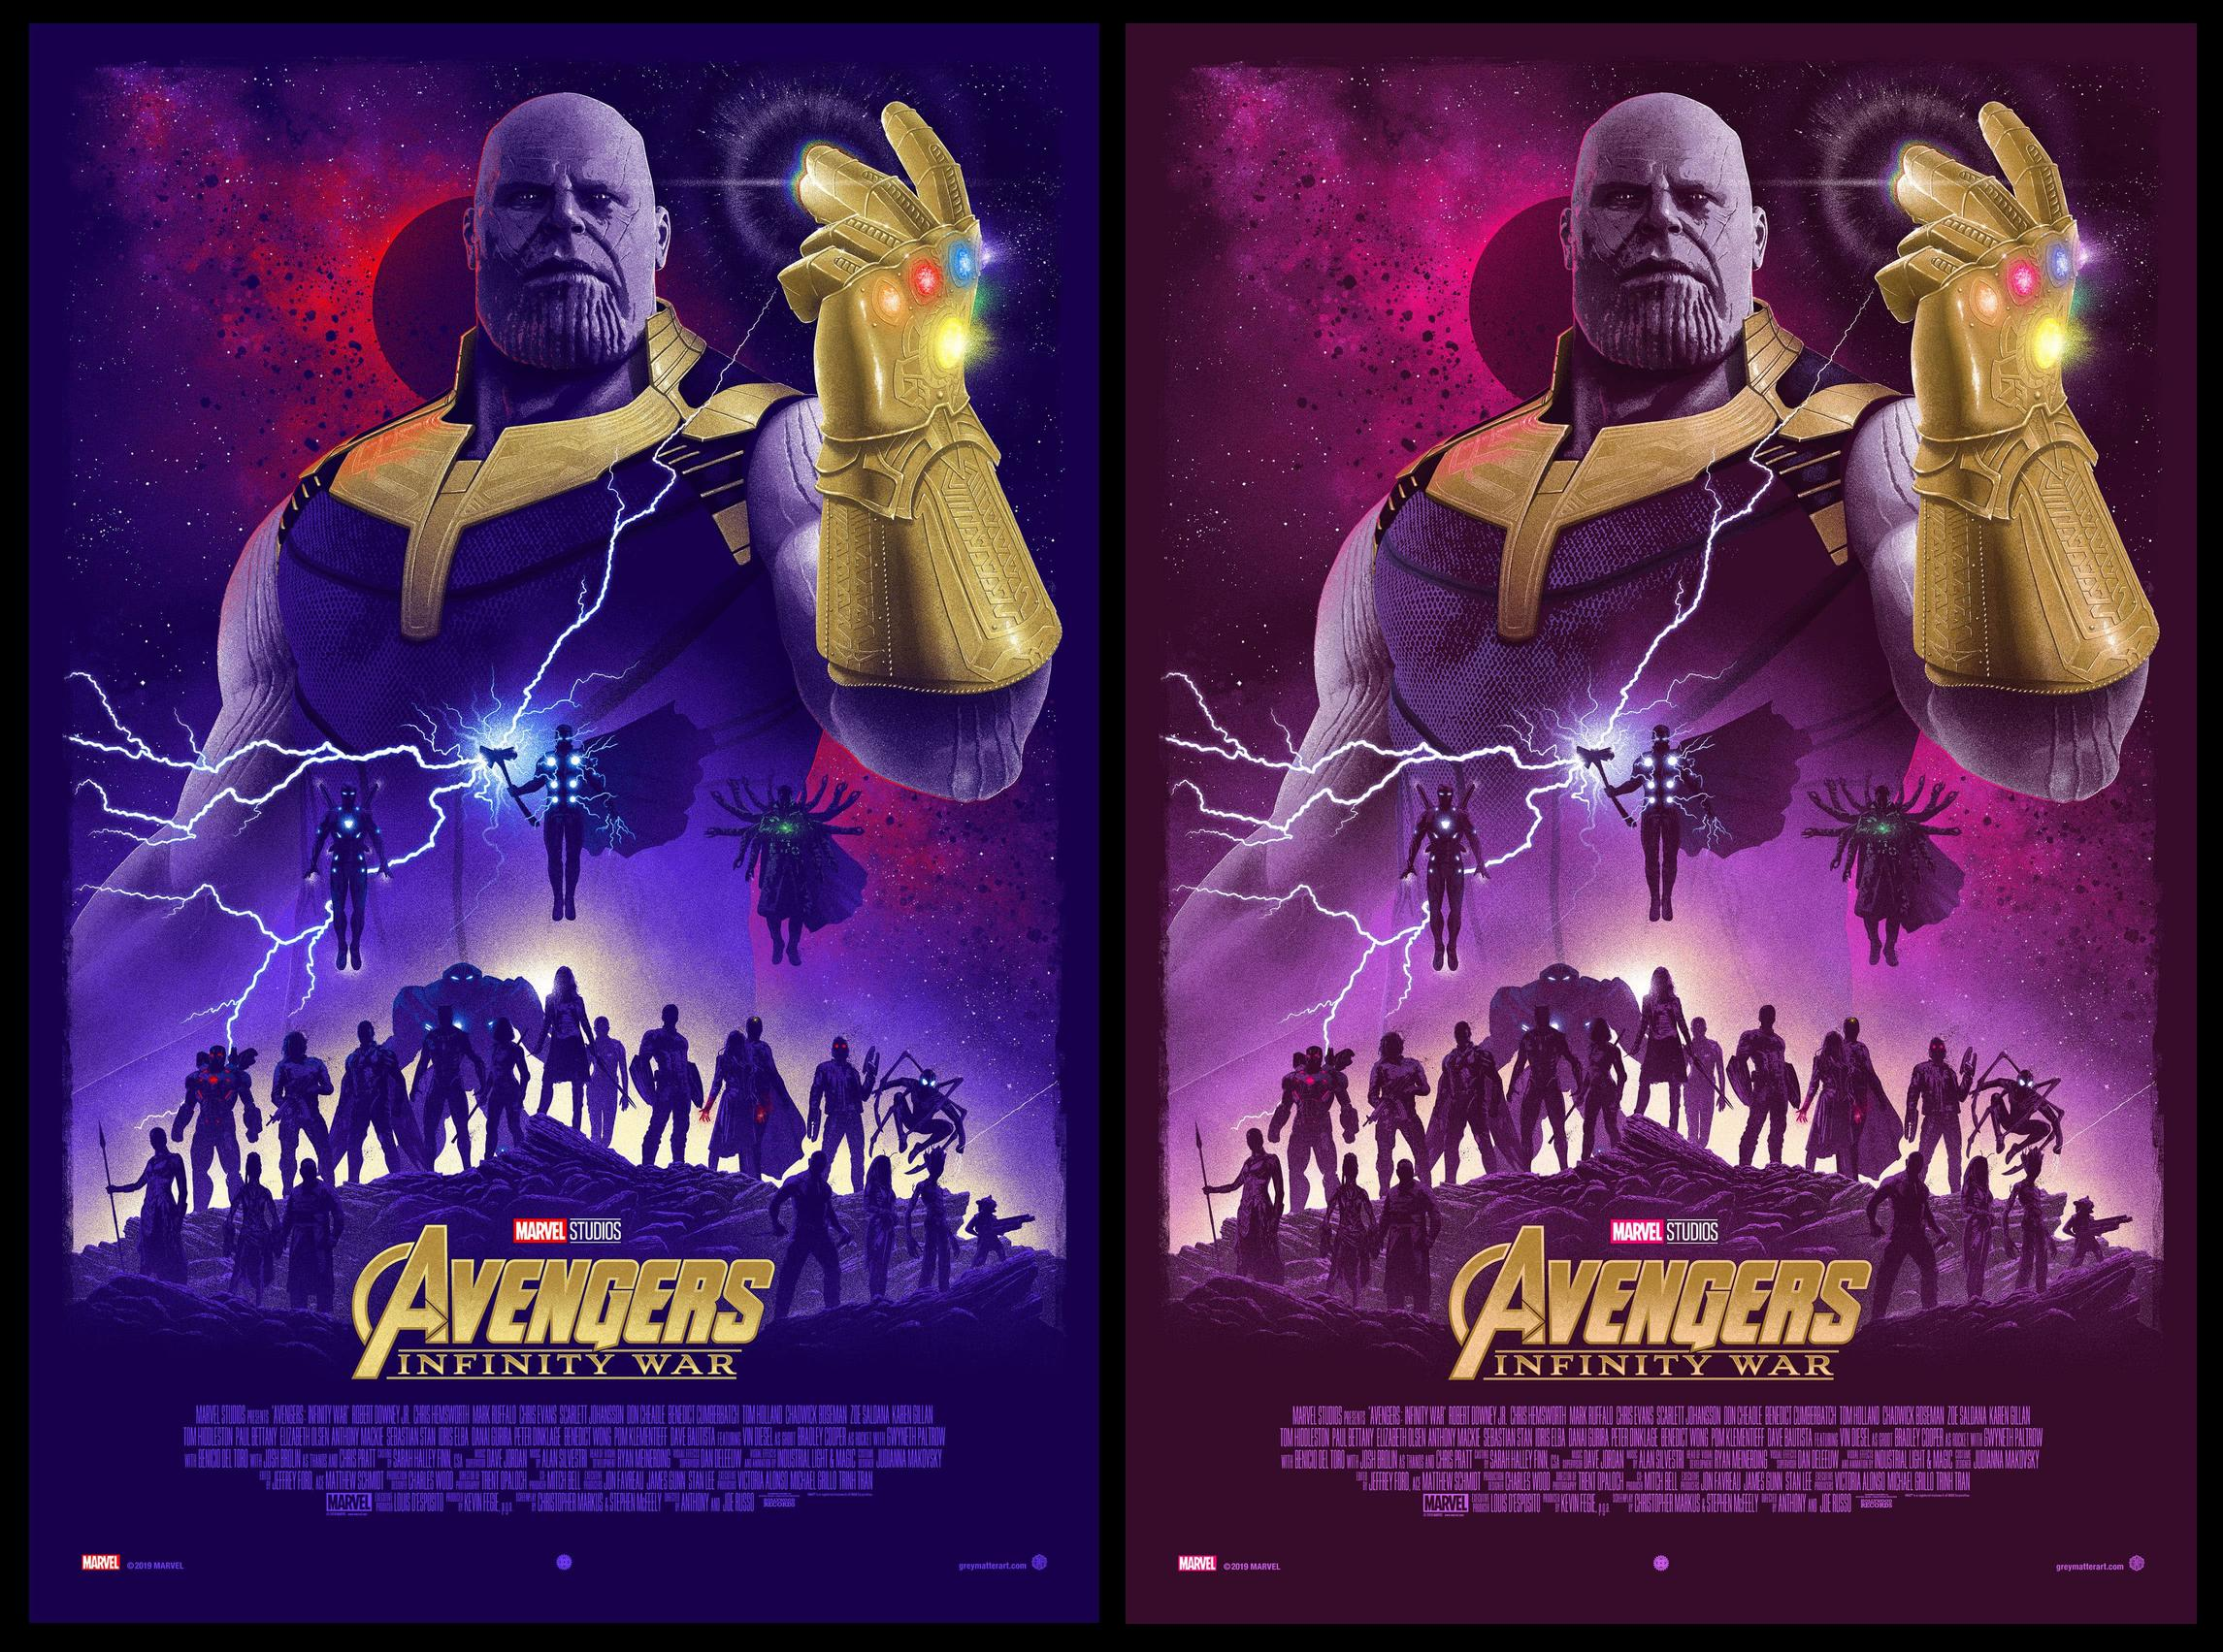 Avengers Infinity War by Marko Manev